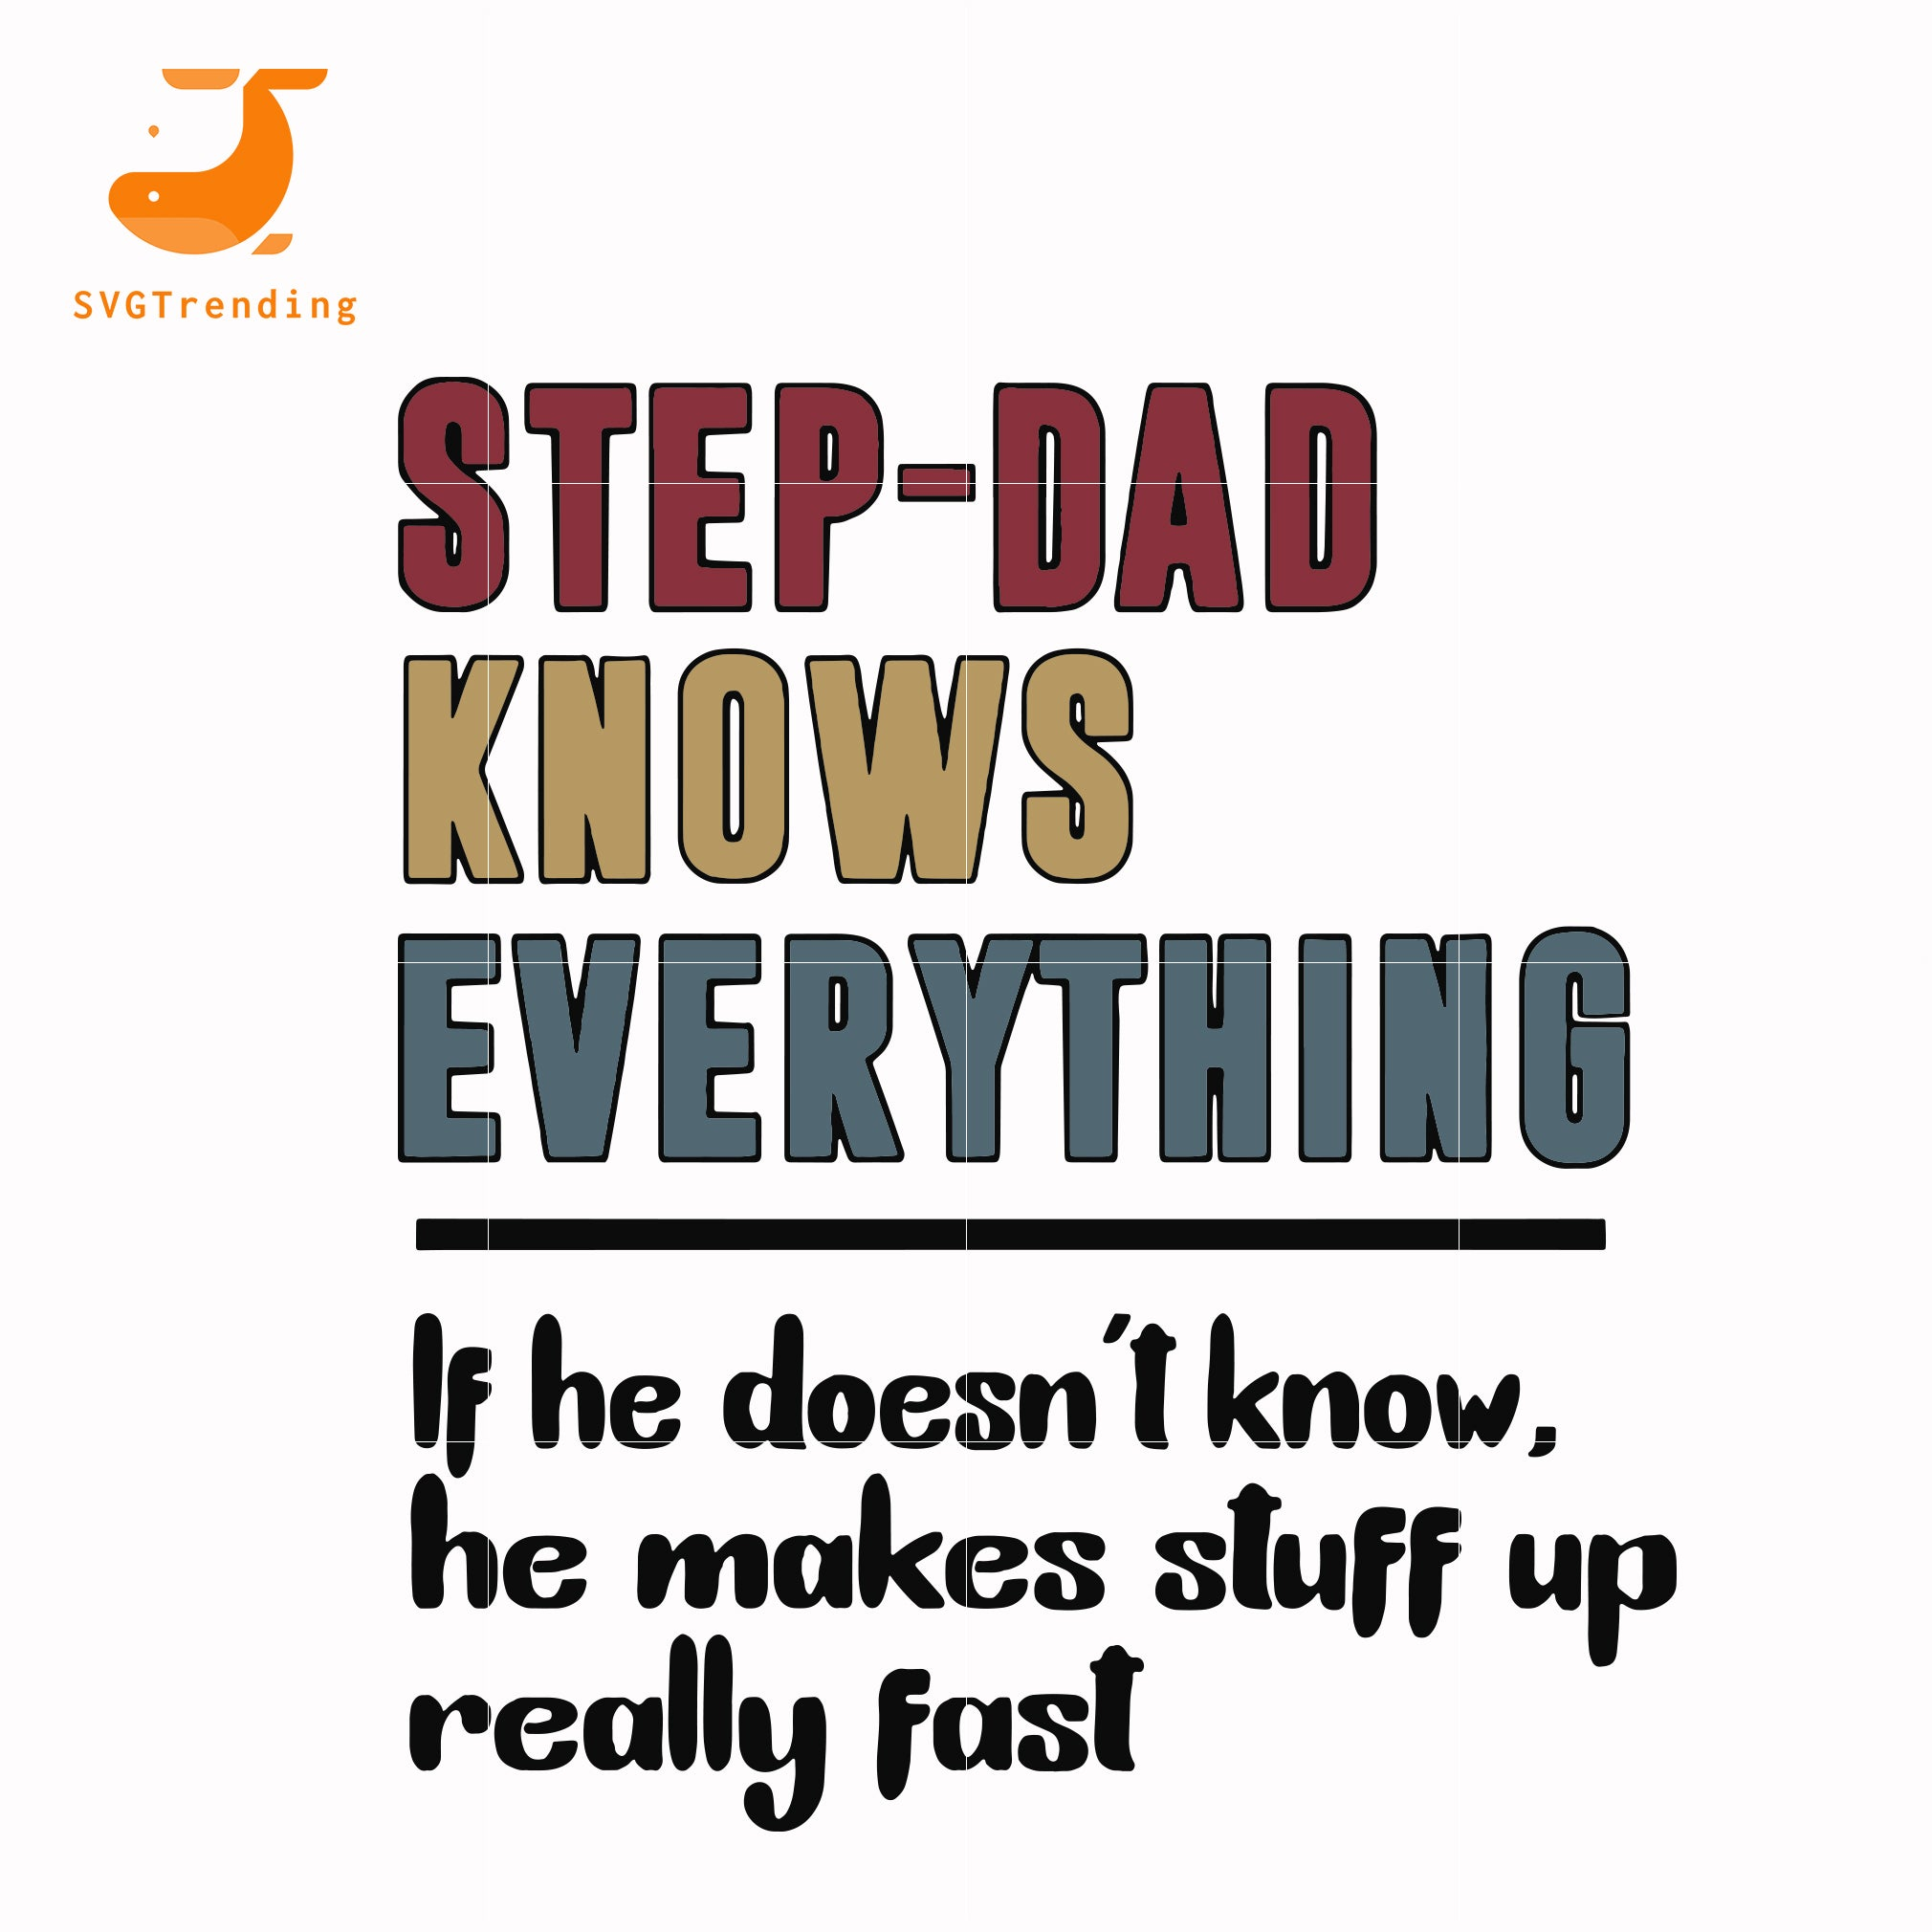 Step dad knows everything svg, png, dxf, eps, digital file FTD119